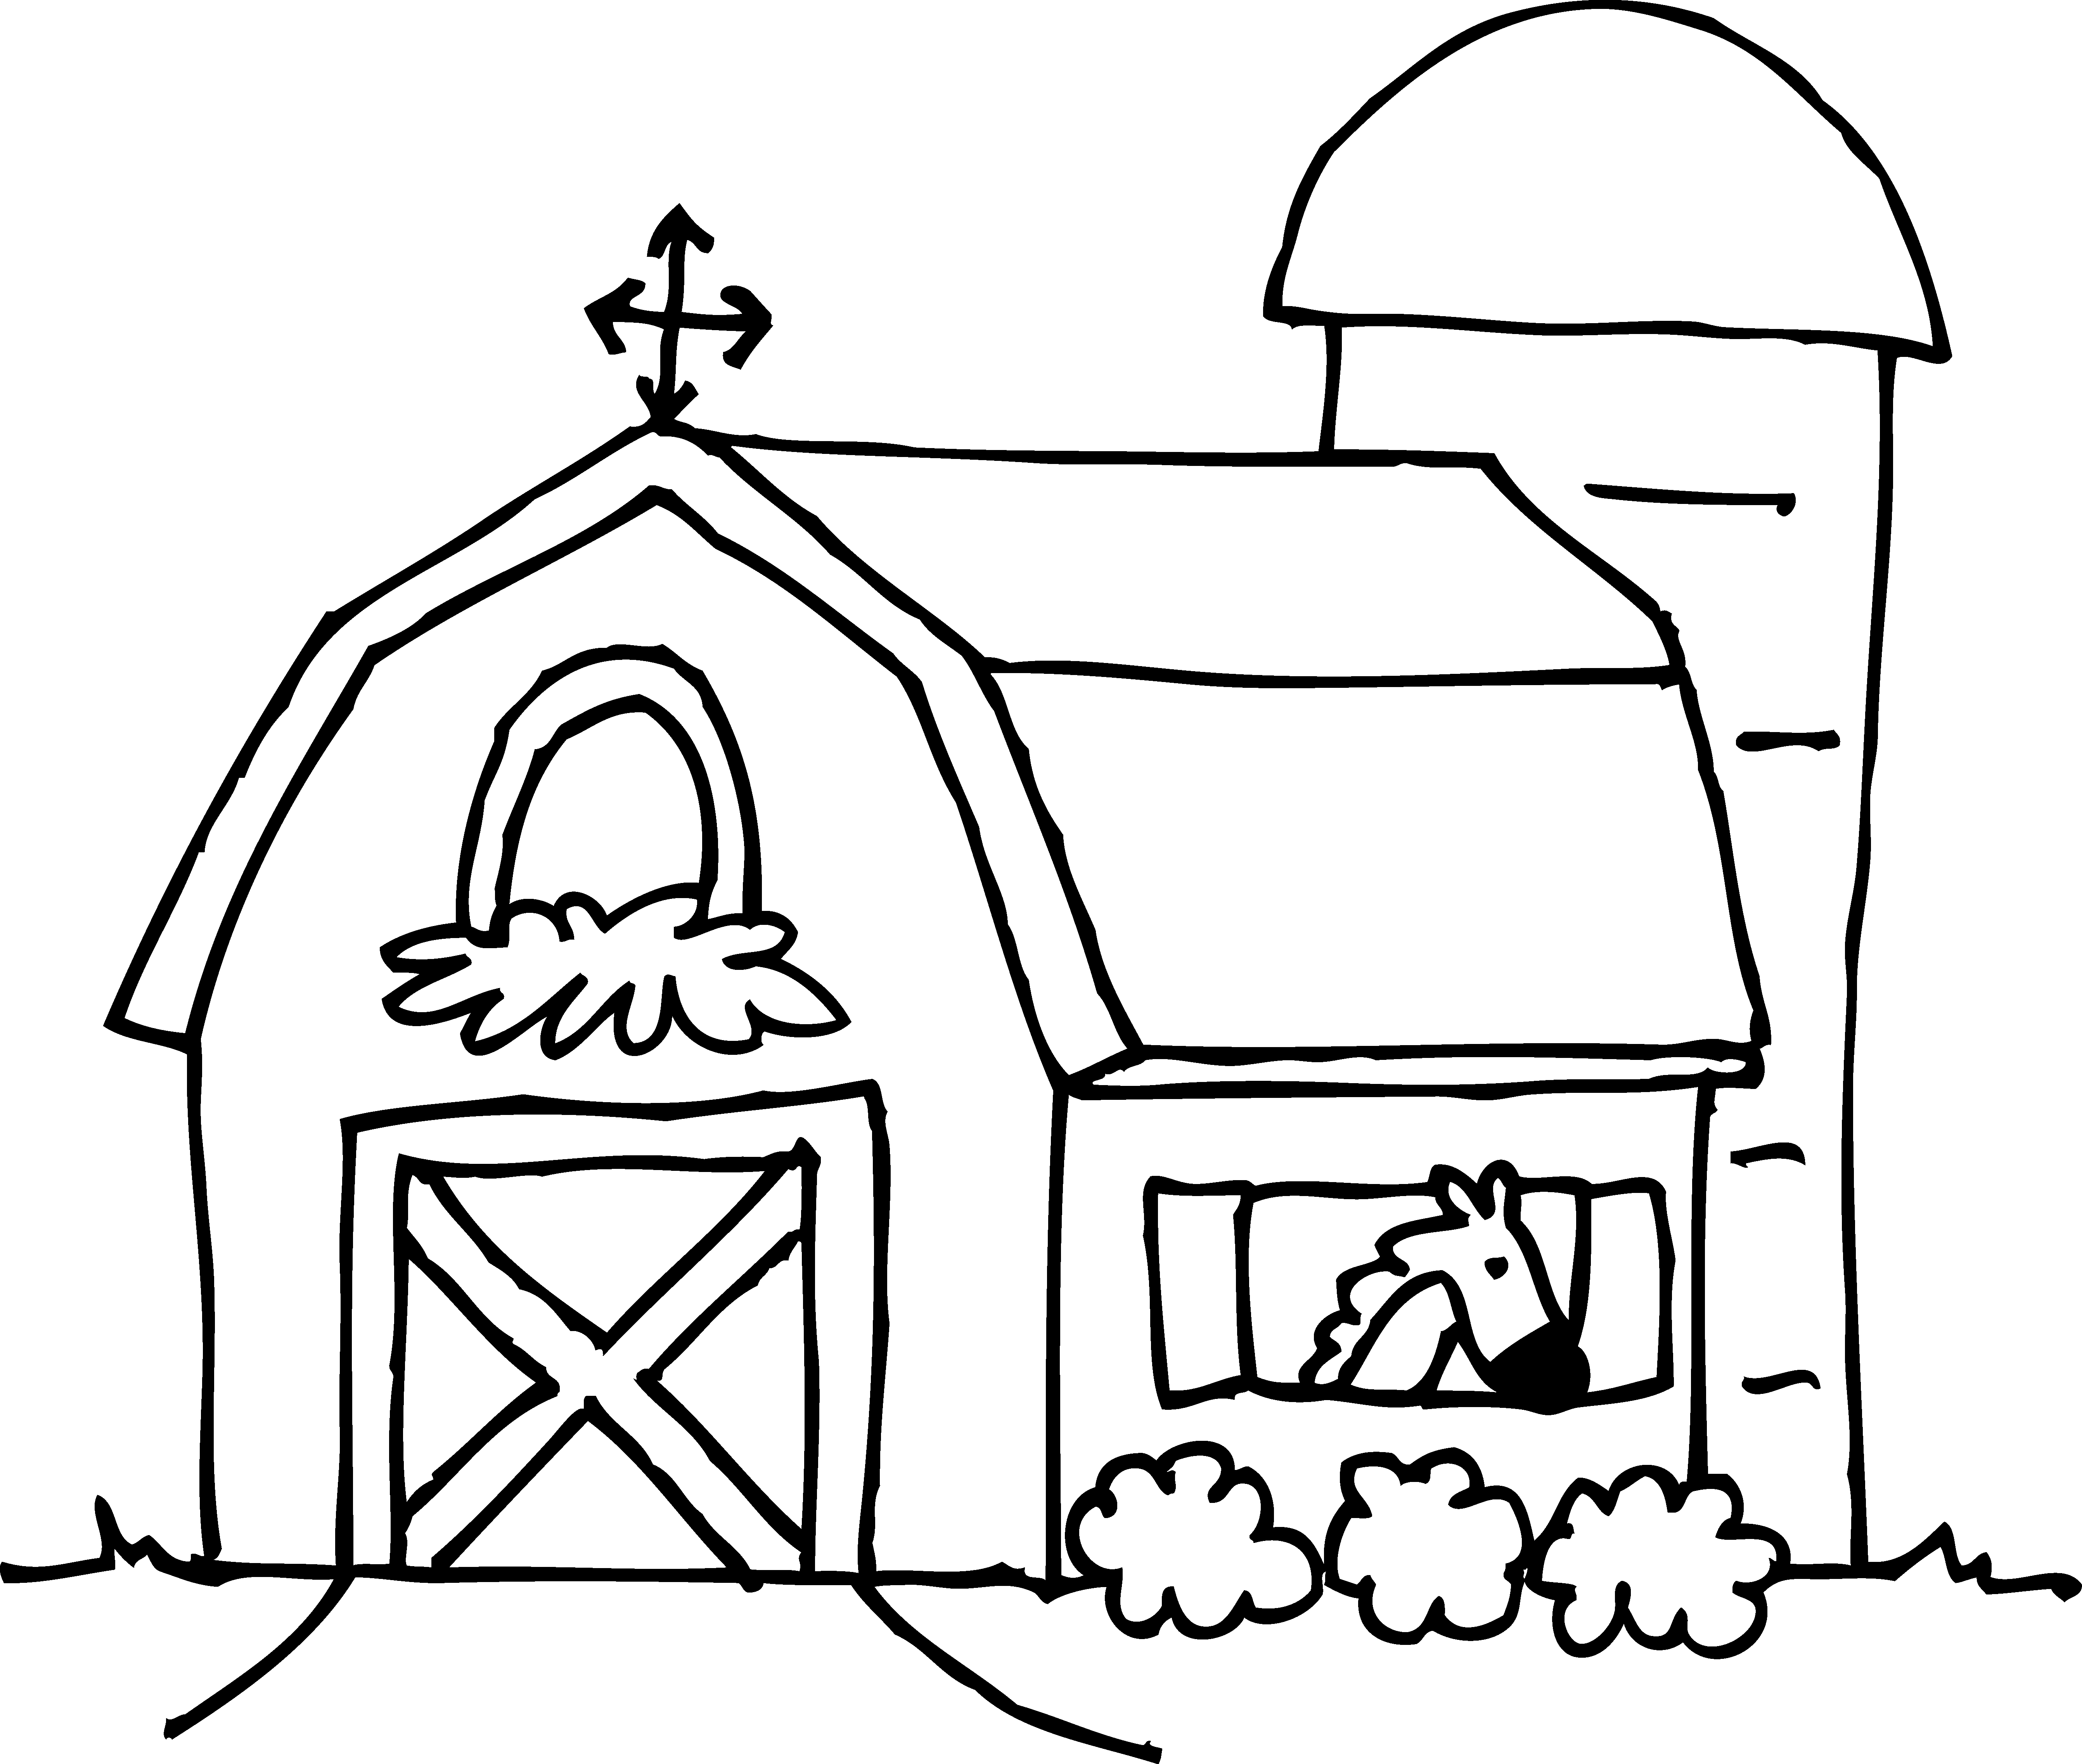 Free Barn Clipart Pictures